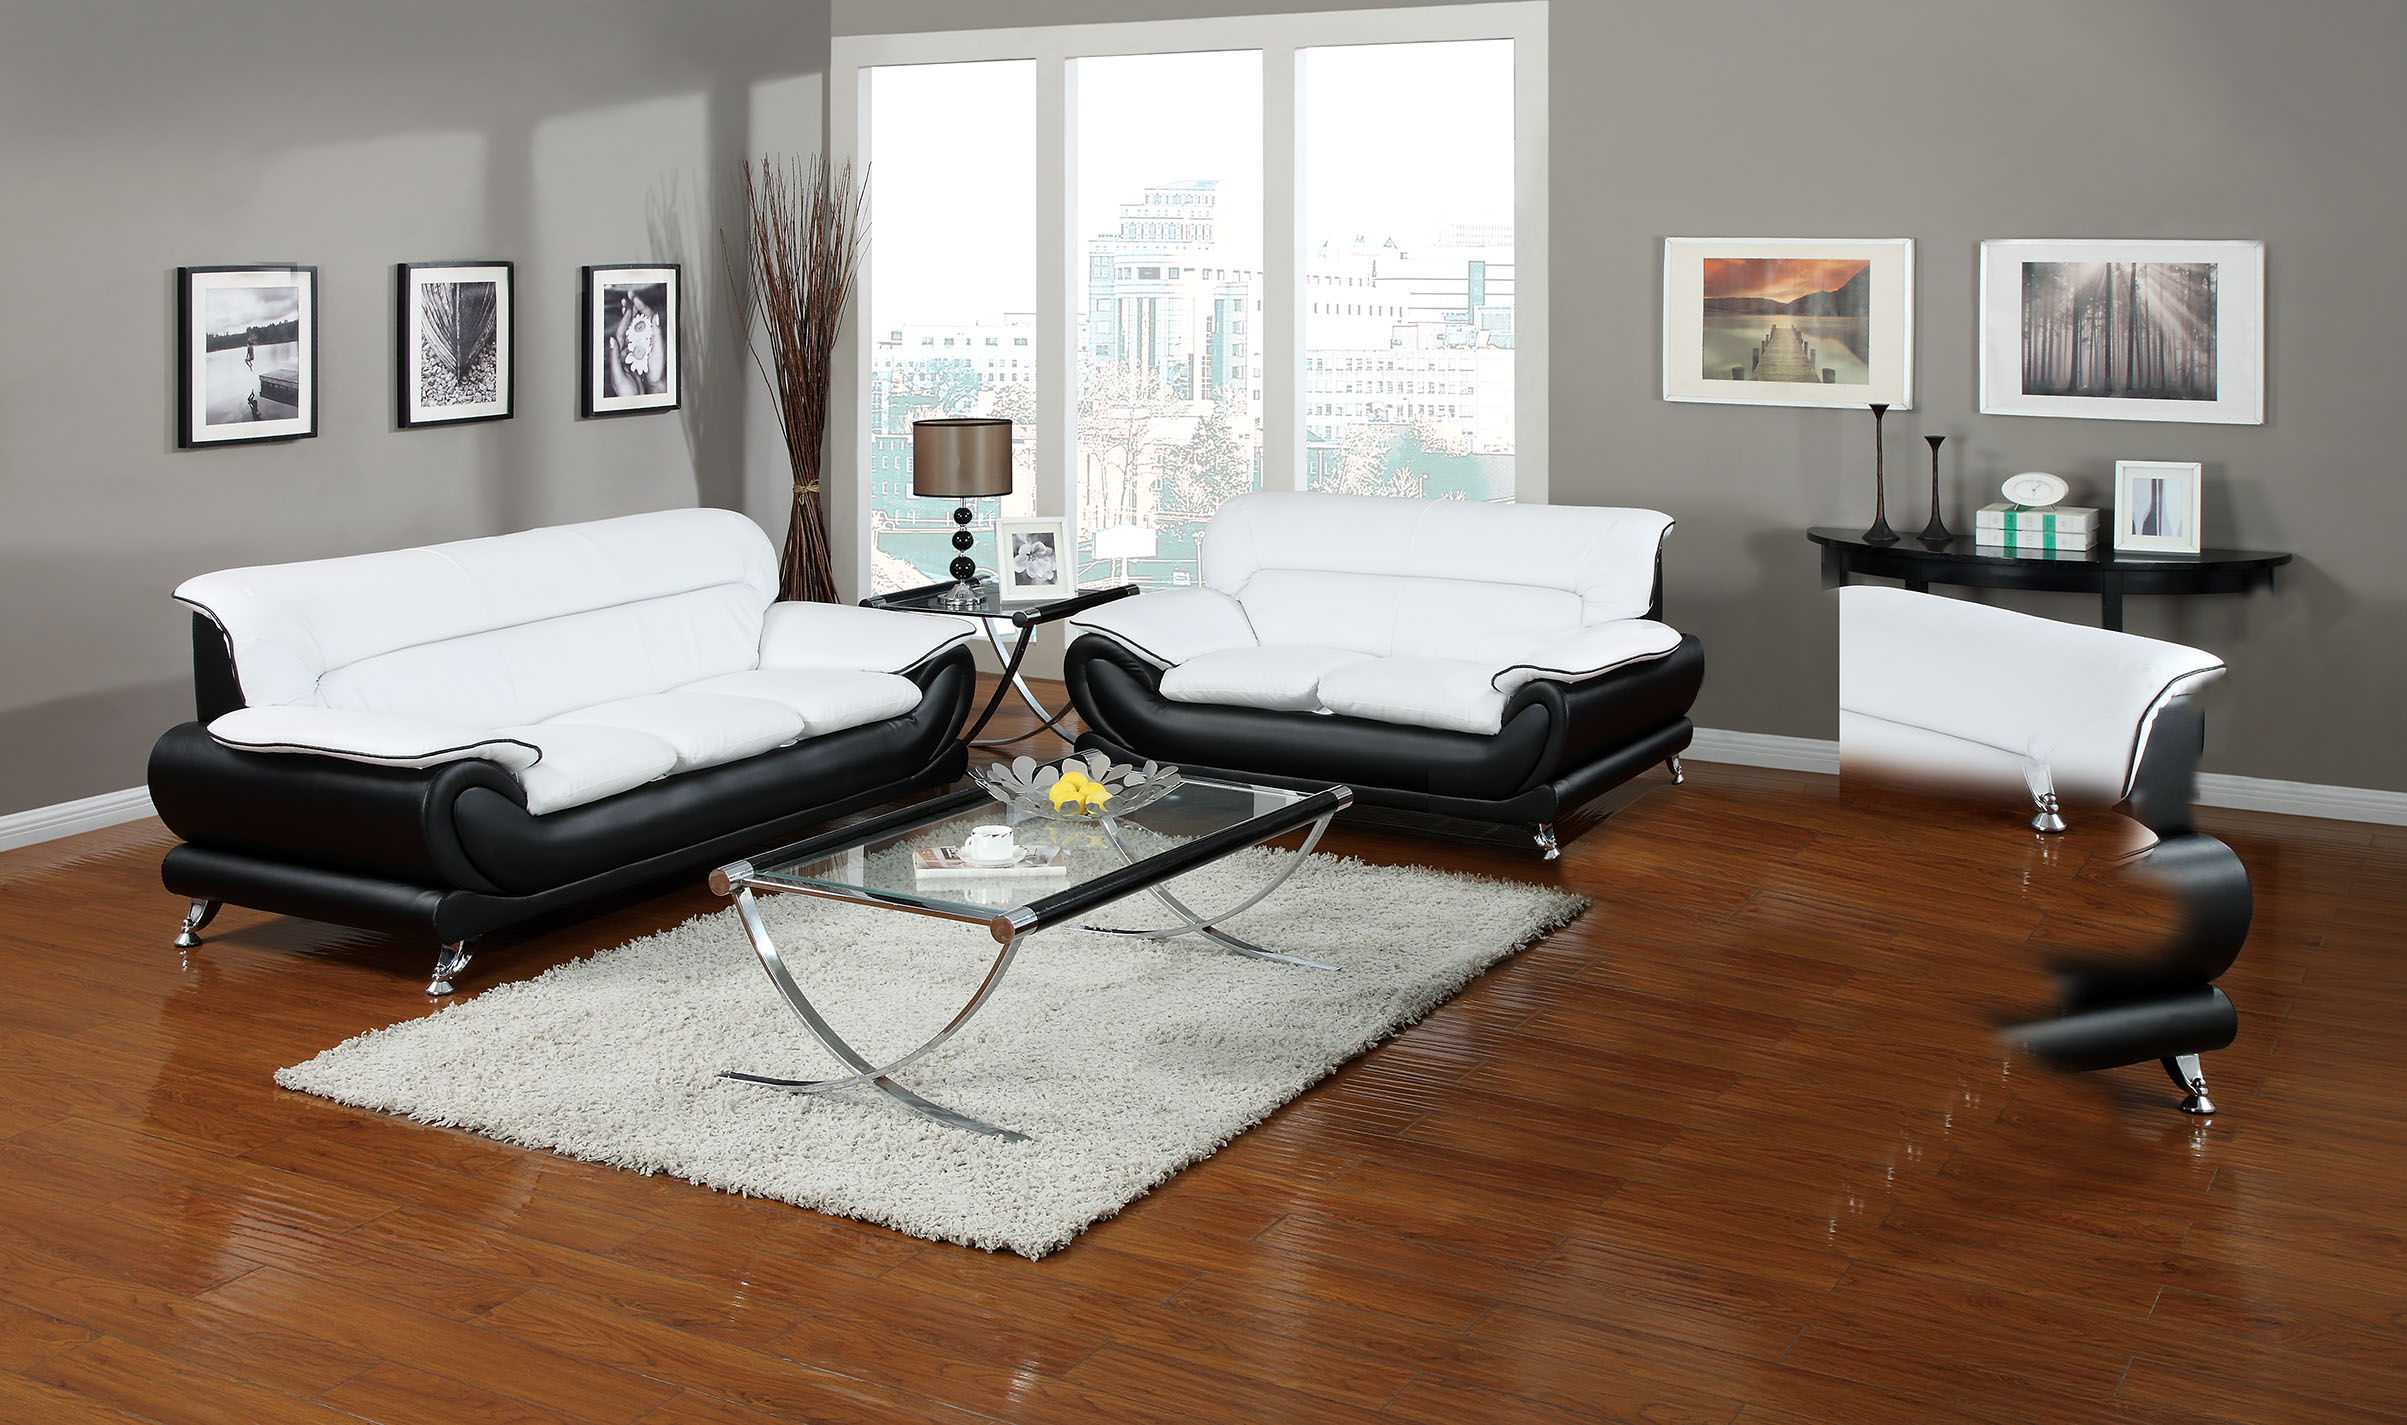 Silverstatefurniture.com